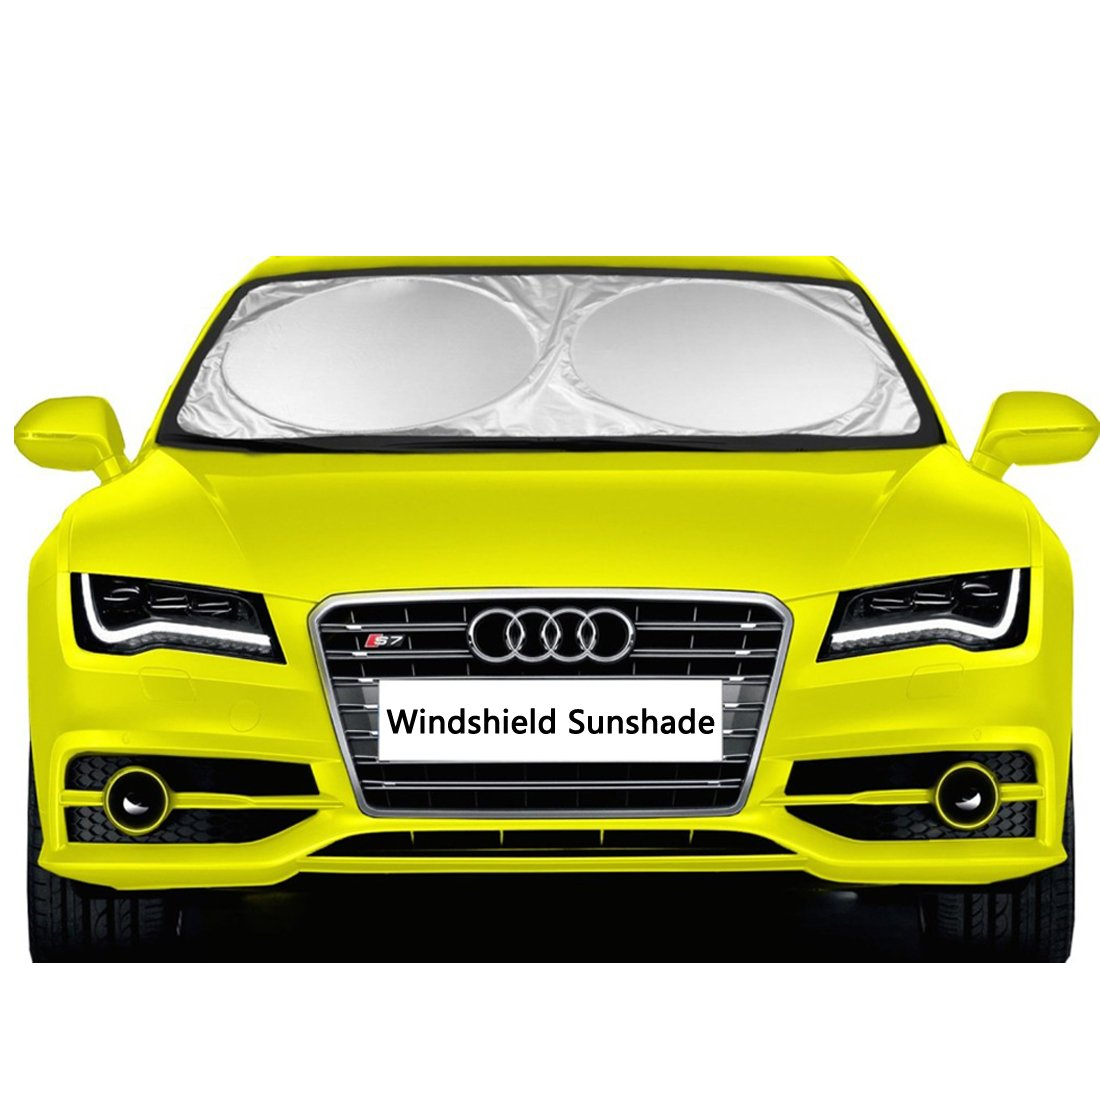 "Car Windshield Sunshade - EveShine Sun shade UV Auto Protector (63"" x 31.5"") - Pop Up Style Retractable Sun Screen Front Window Sun Shade - Fits Most Universal Family Cars"